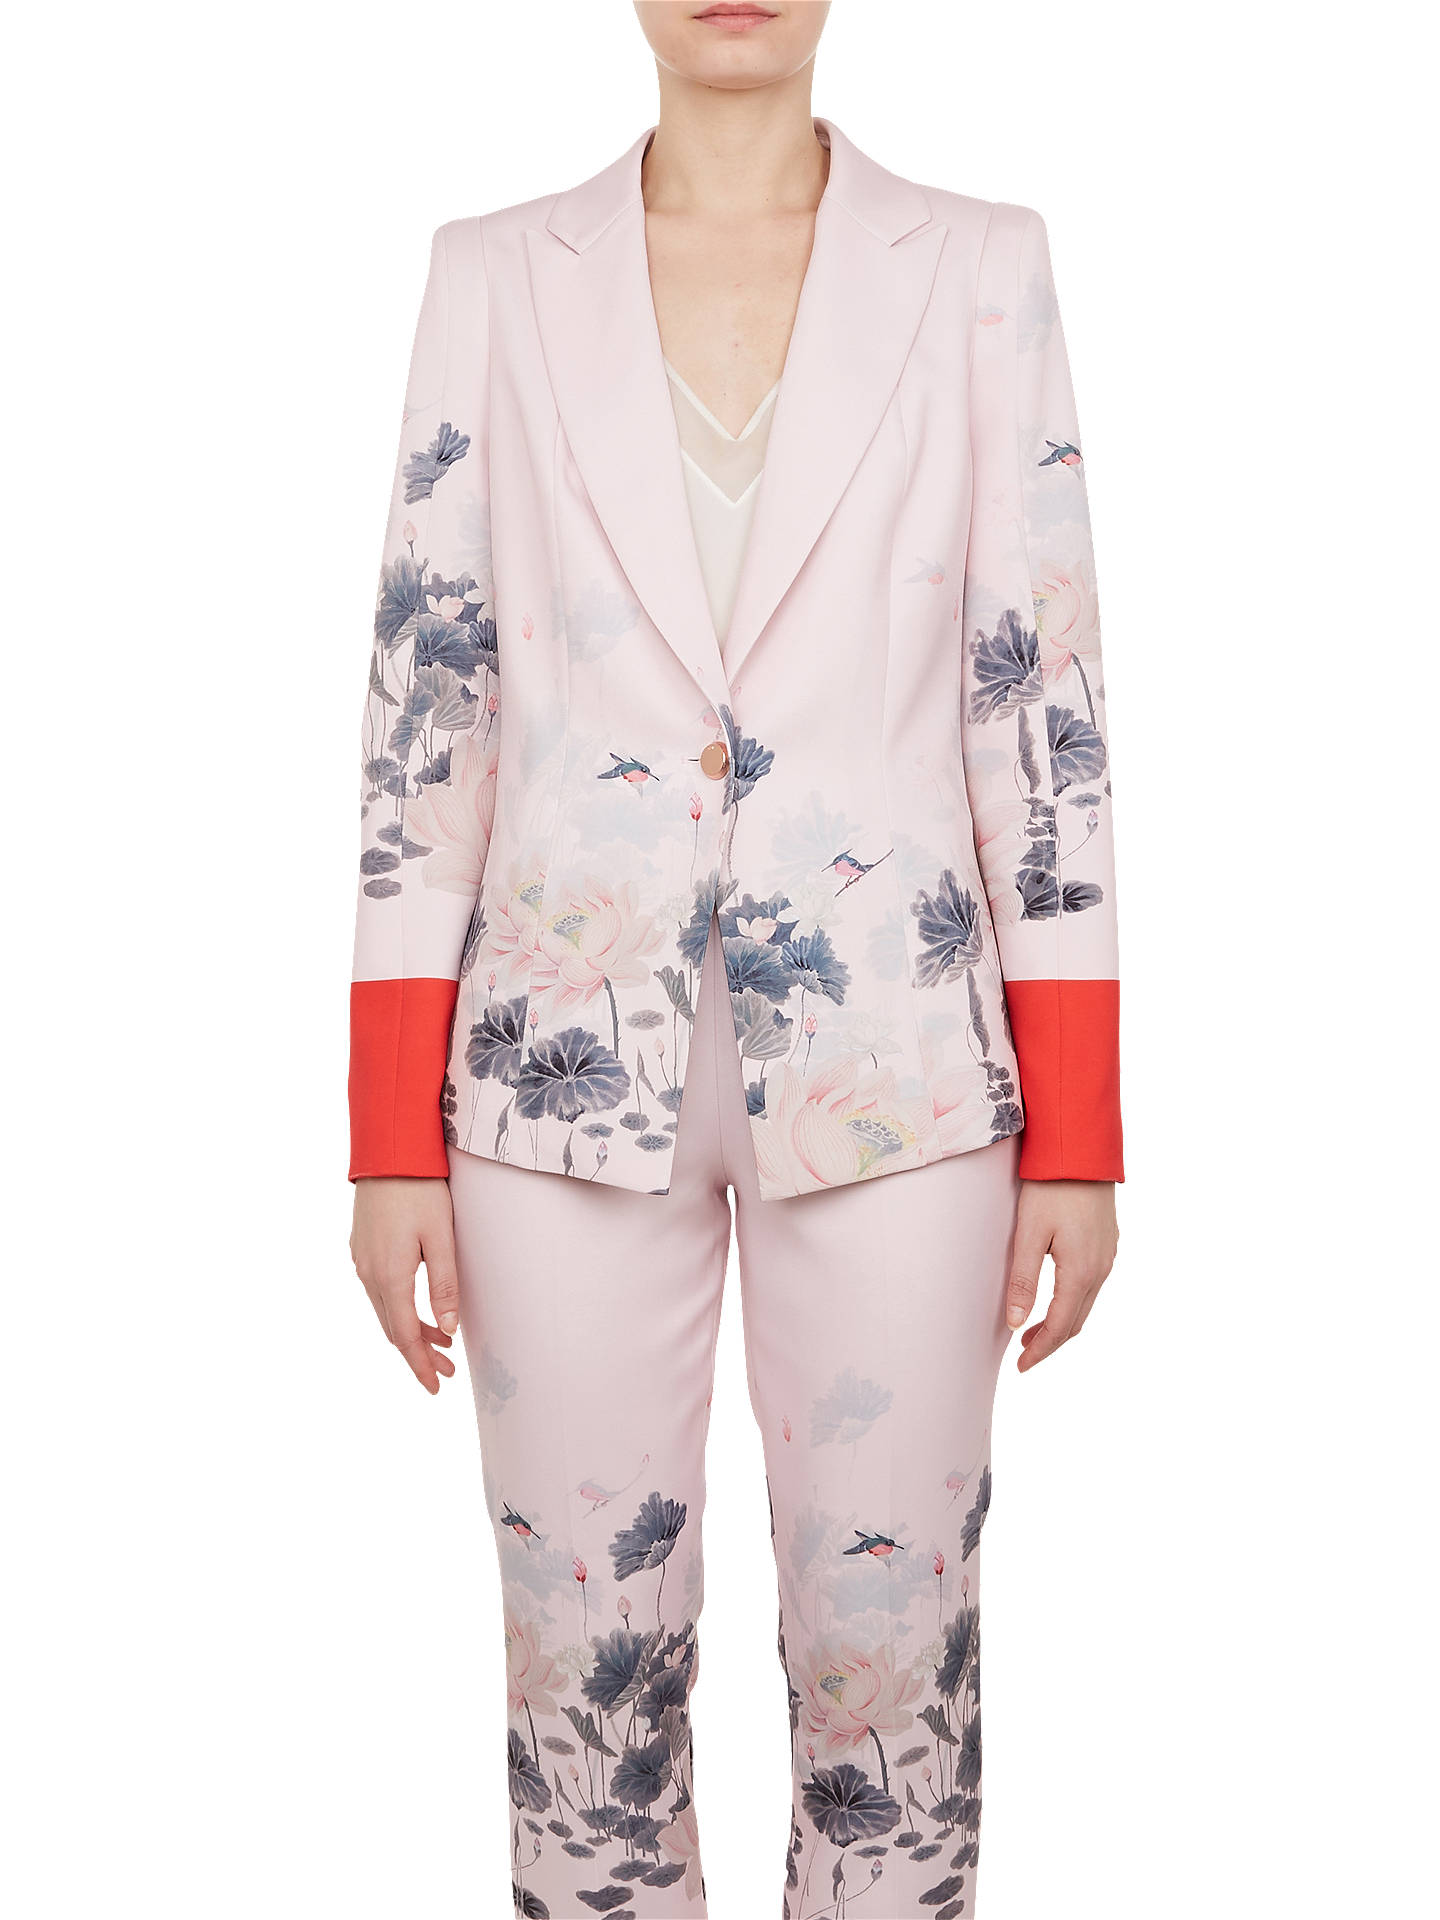 da598c4839ce8 Buy Ted Baker Naimh Lake Of Dreams Tailored Jacket